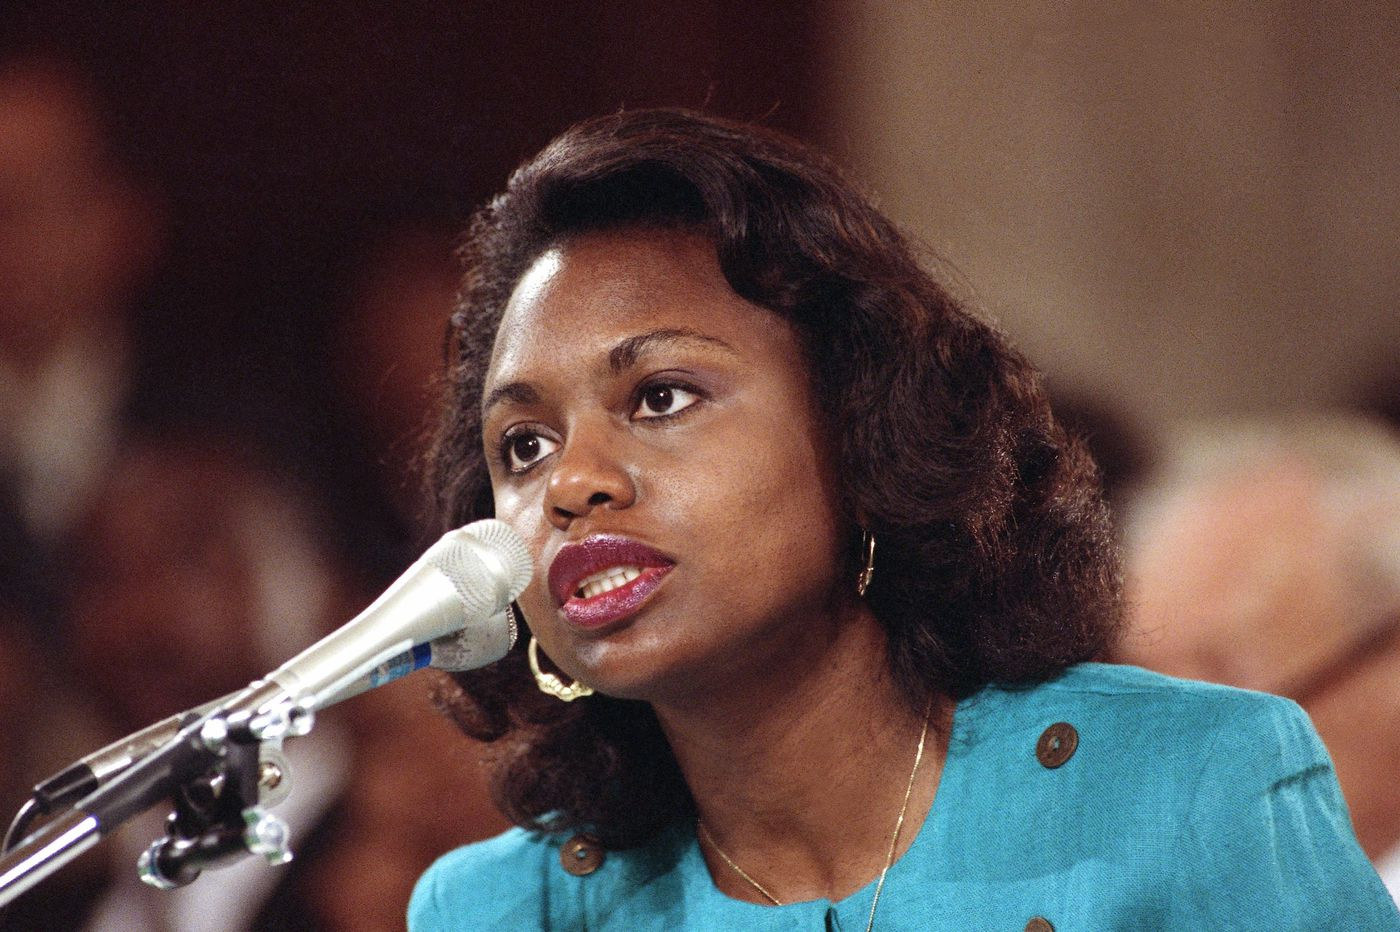 Allegations against Brett Kavanaugh feel like Anita Hill 2.0. But there are key differences.